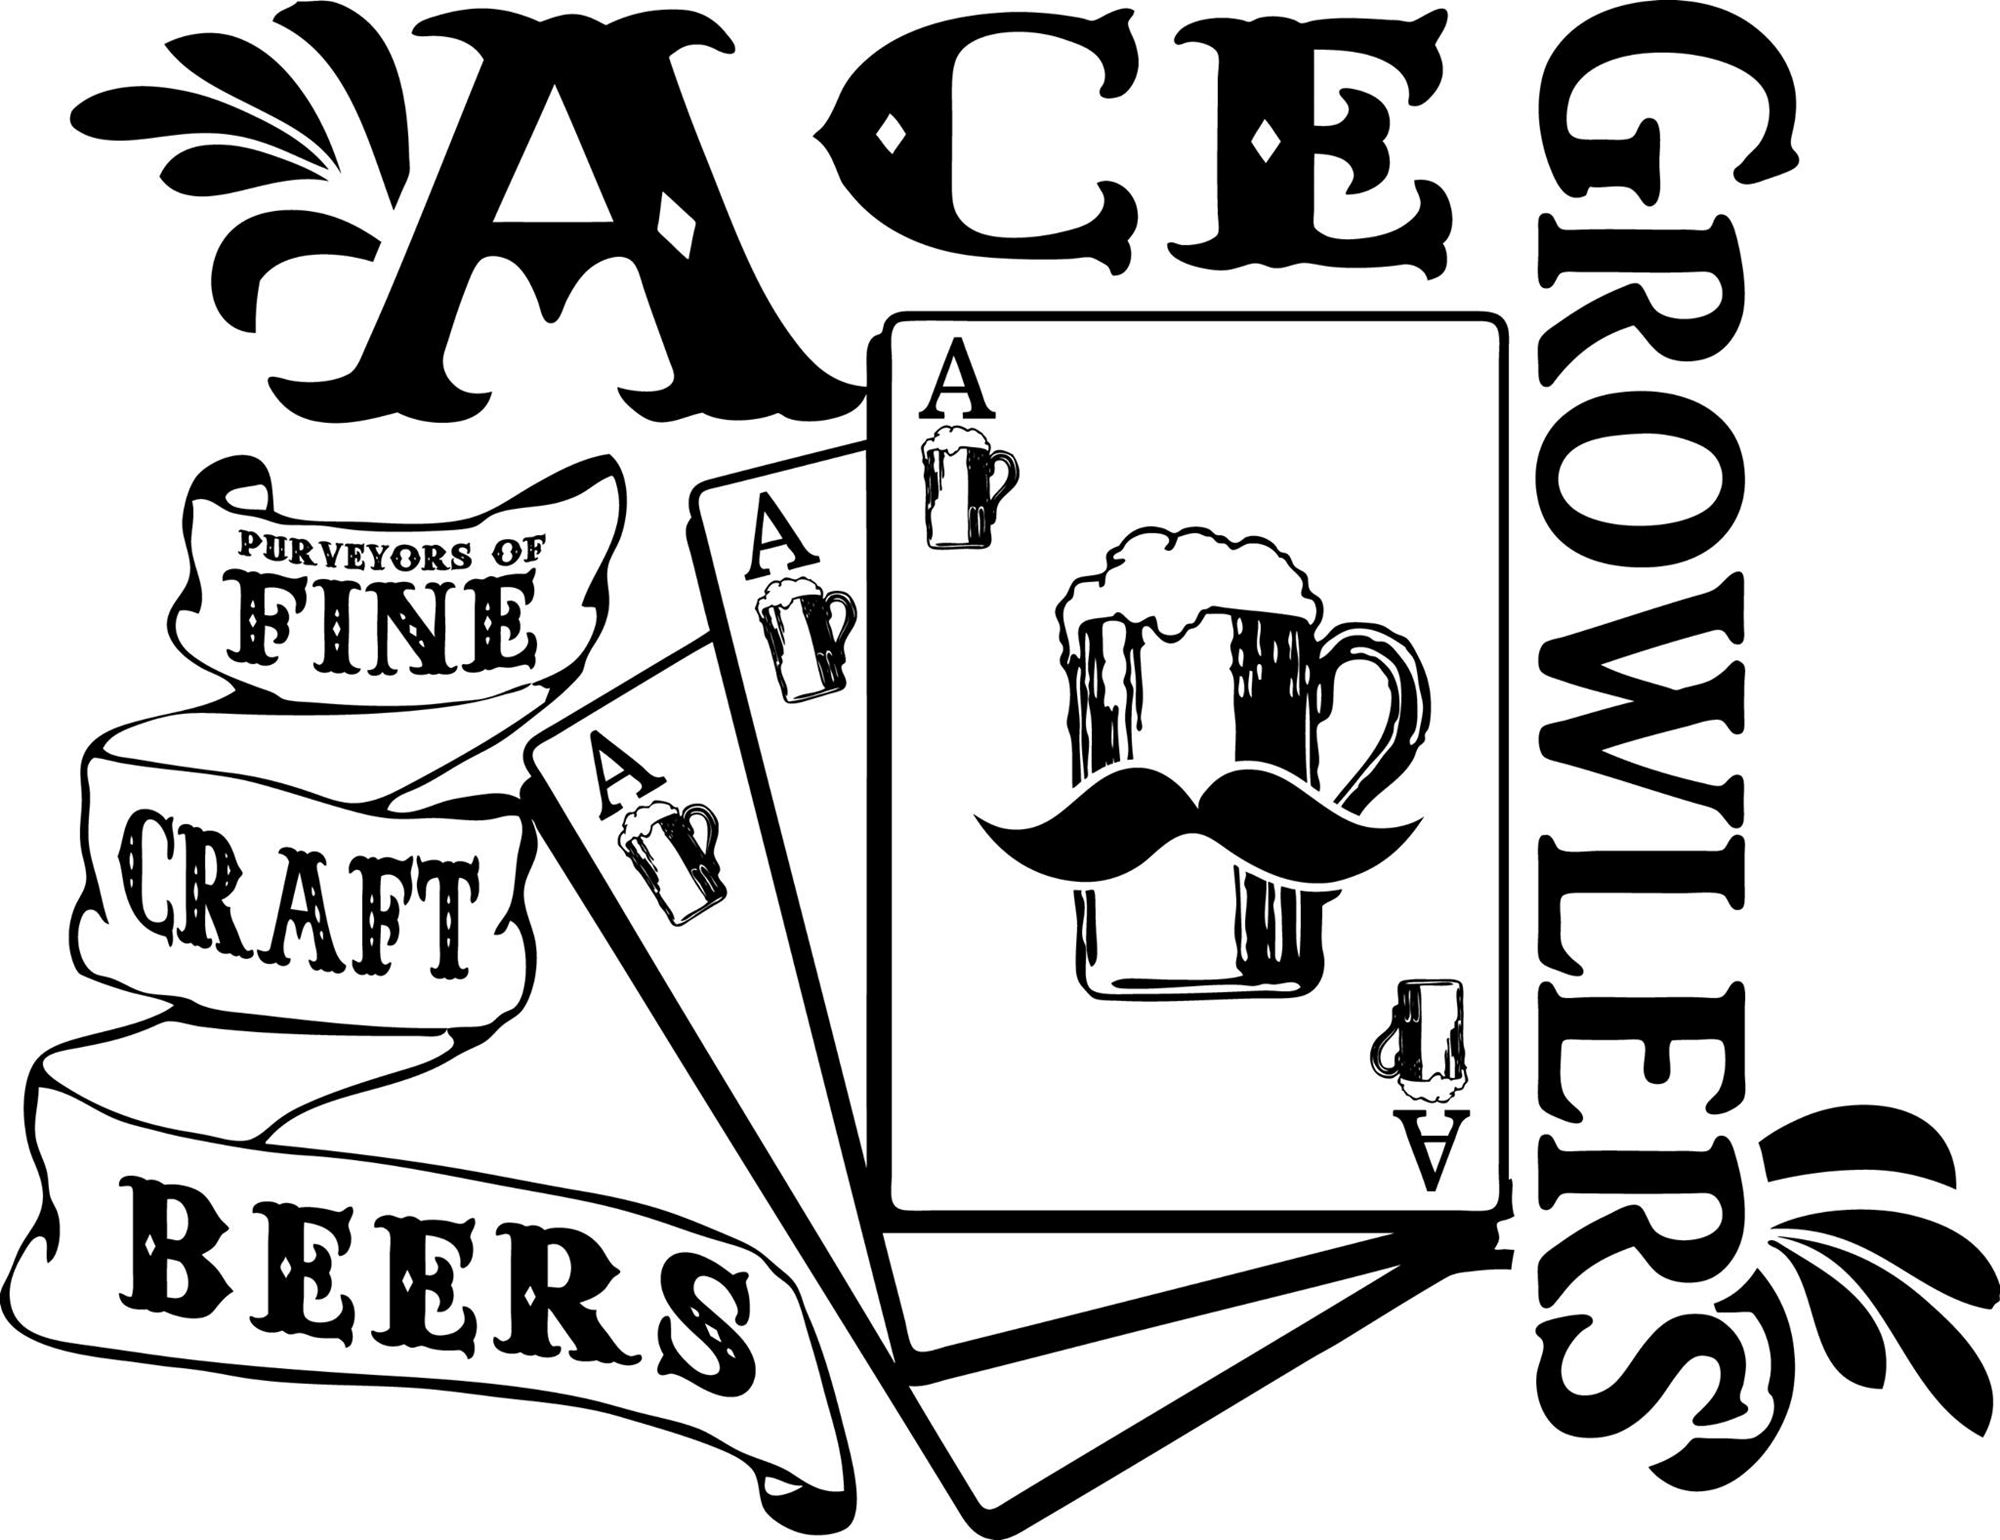 Ace Beer Growlers